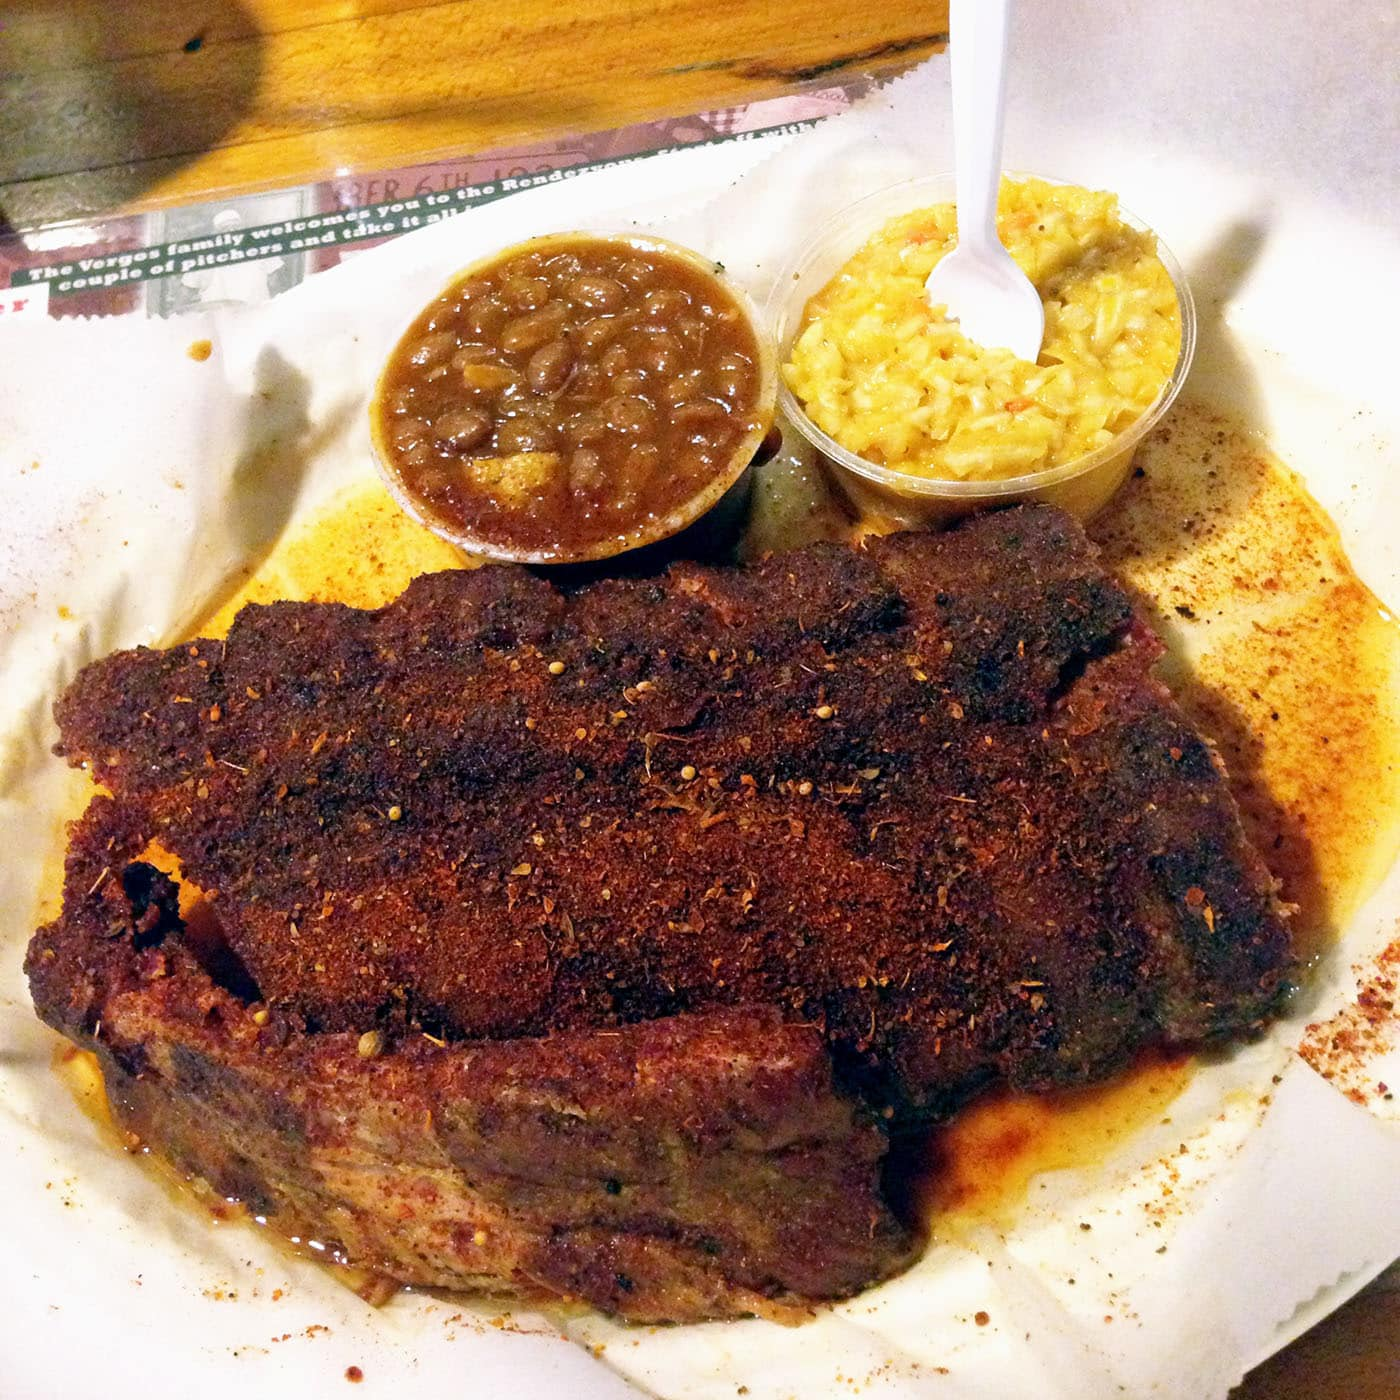 Pork ribs from Rendezvous Ribs in Memphis, Tennessee.